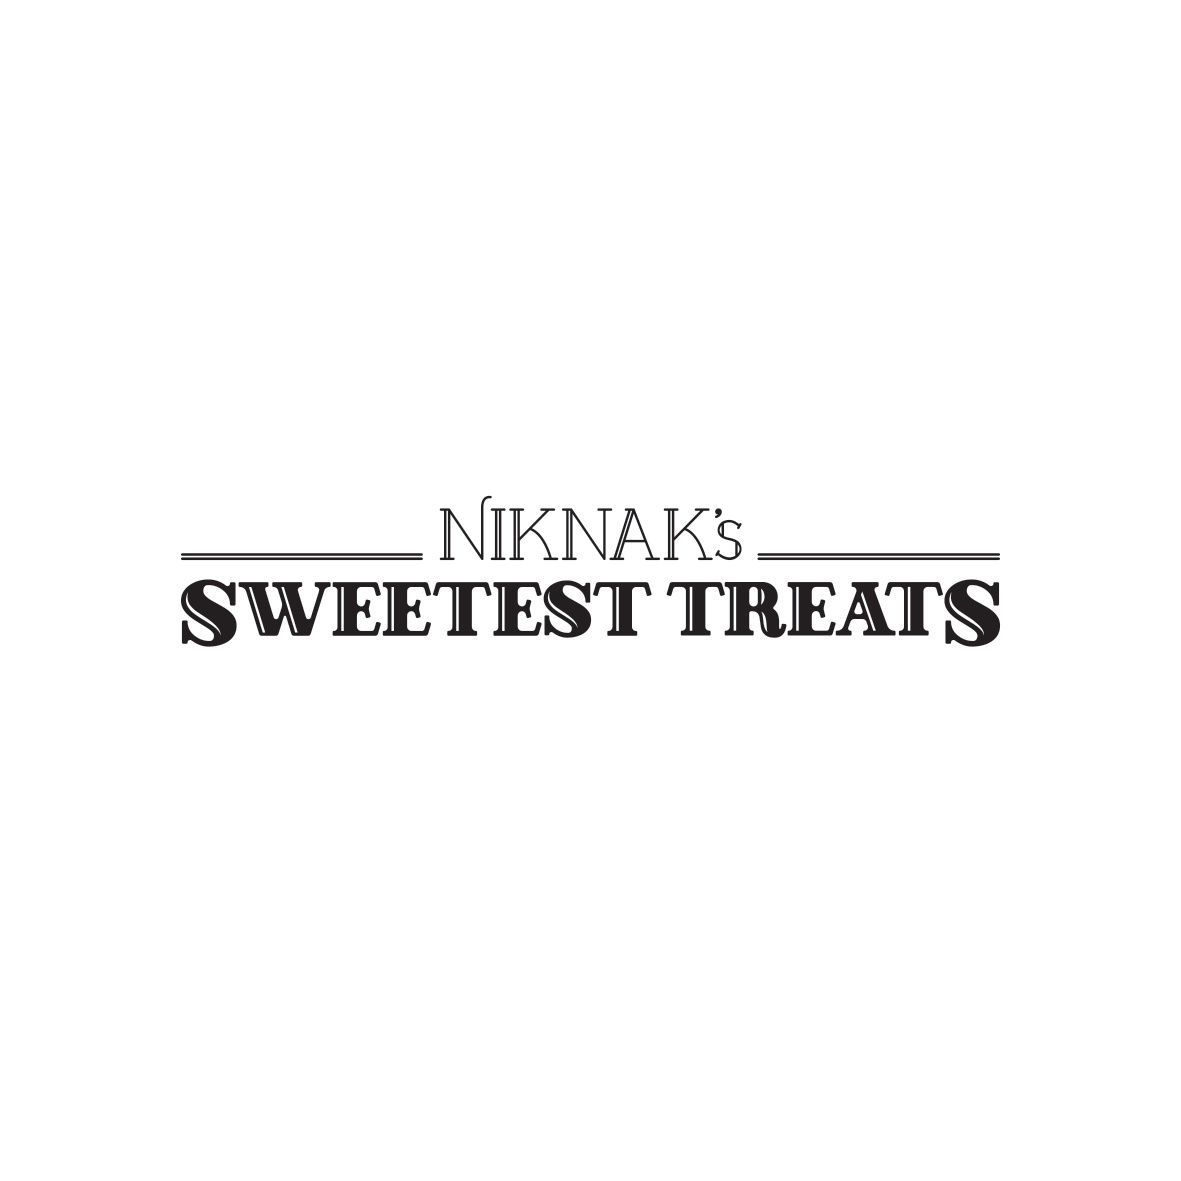 Niknak's Sweetest Treats Logo